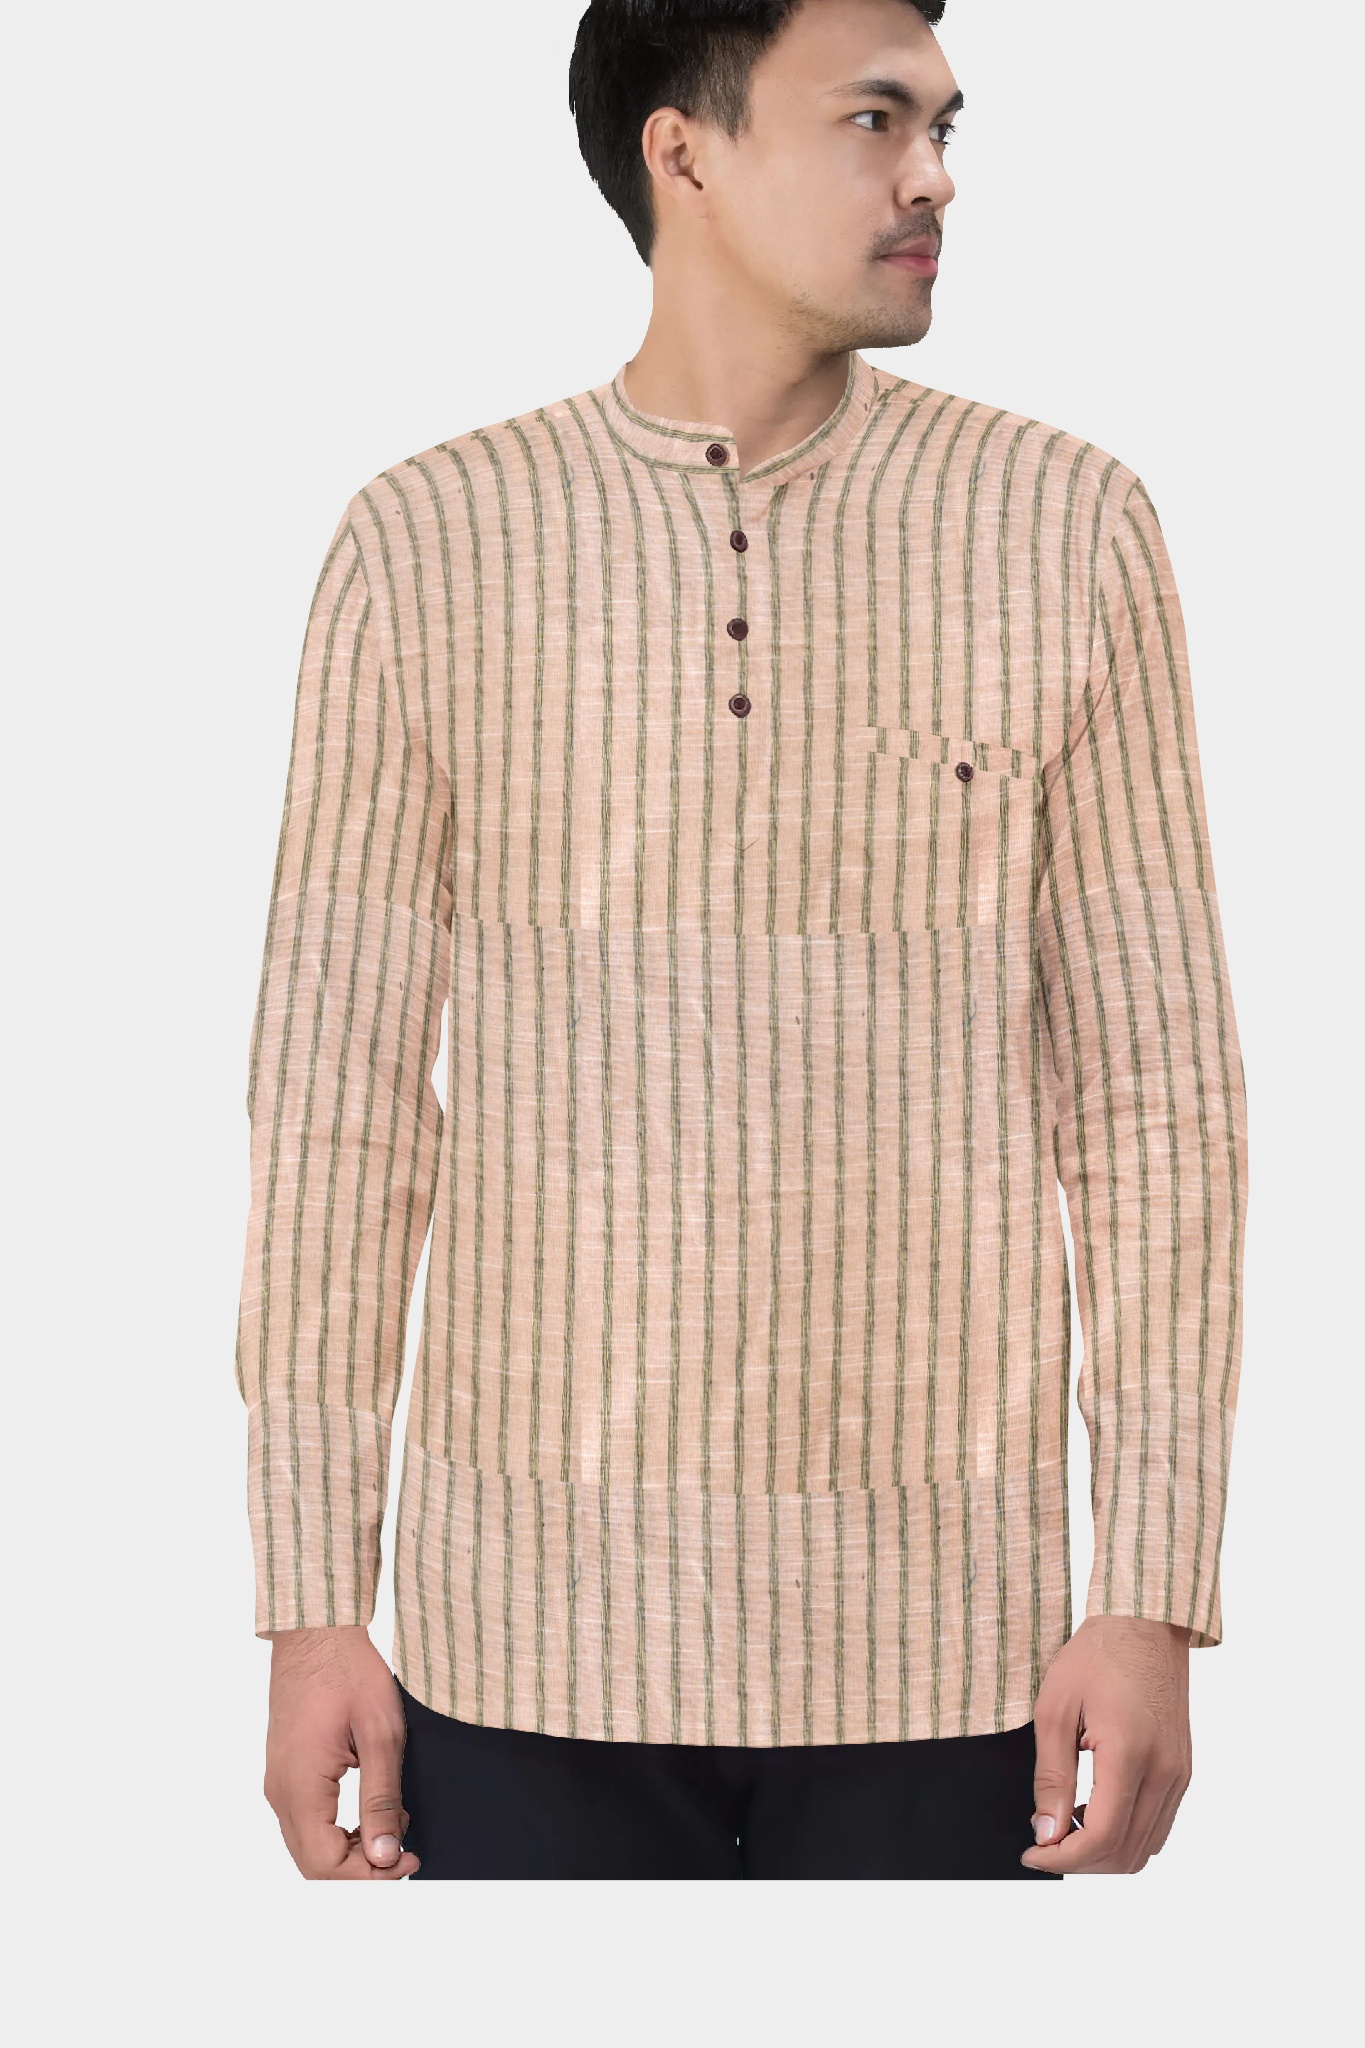 /home/customer/www/fabartcraft.com/public_html/uploadshttps://www.shopolics.com/uploads/images/medium/Beige-Black-Cotton-Short-Kurta-35442.jpg